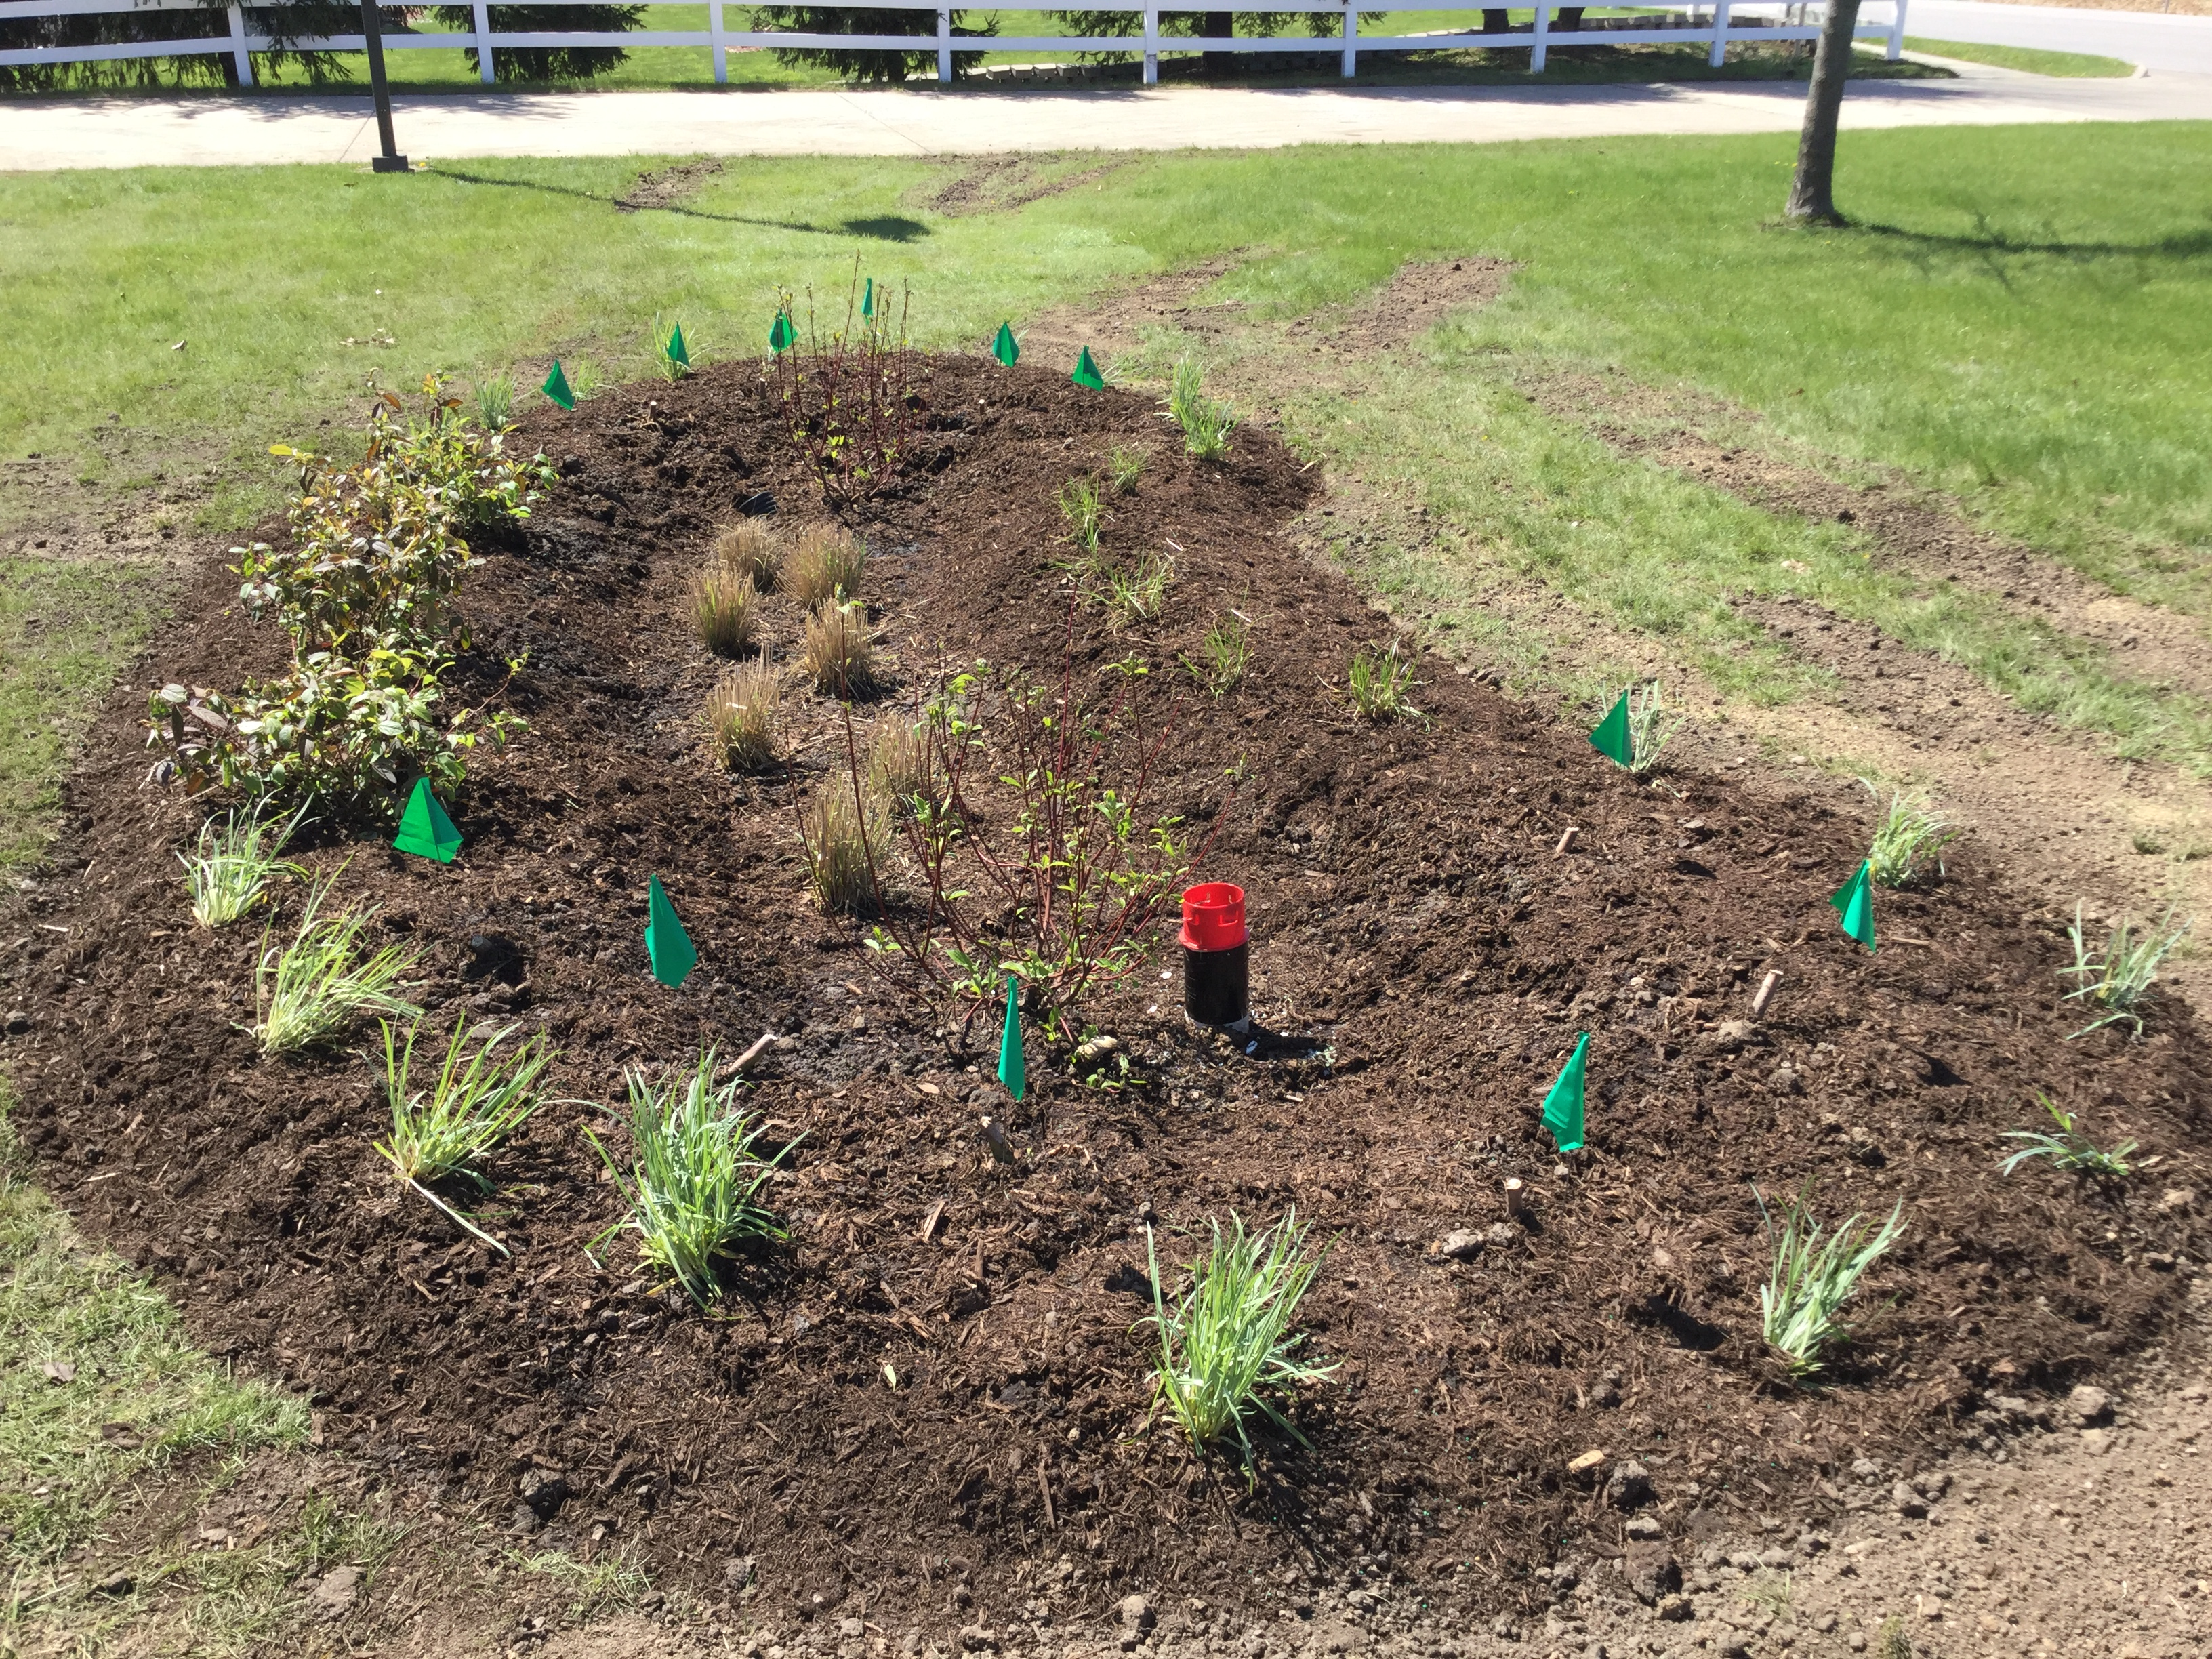 Lafayette fire station rain garden soon after planting